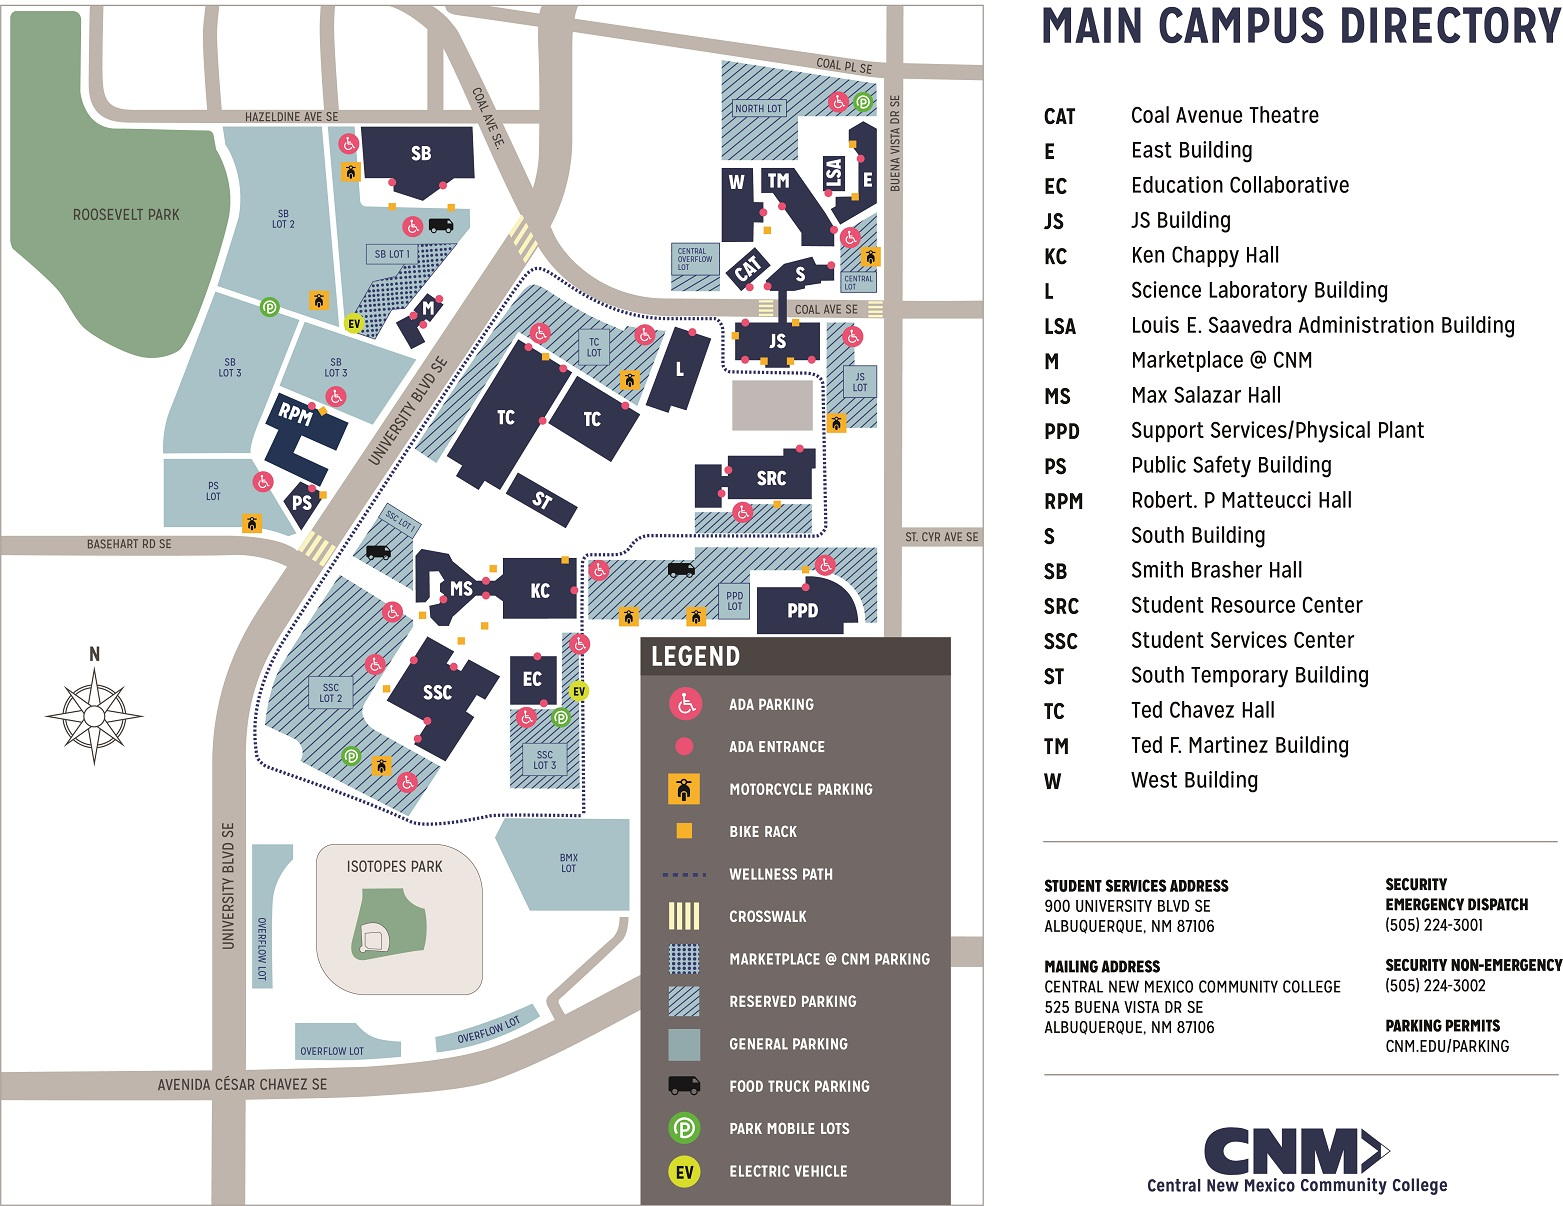 Main Campus Map Central New Mexico Community College